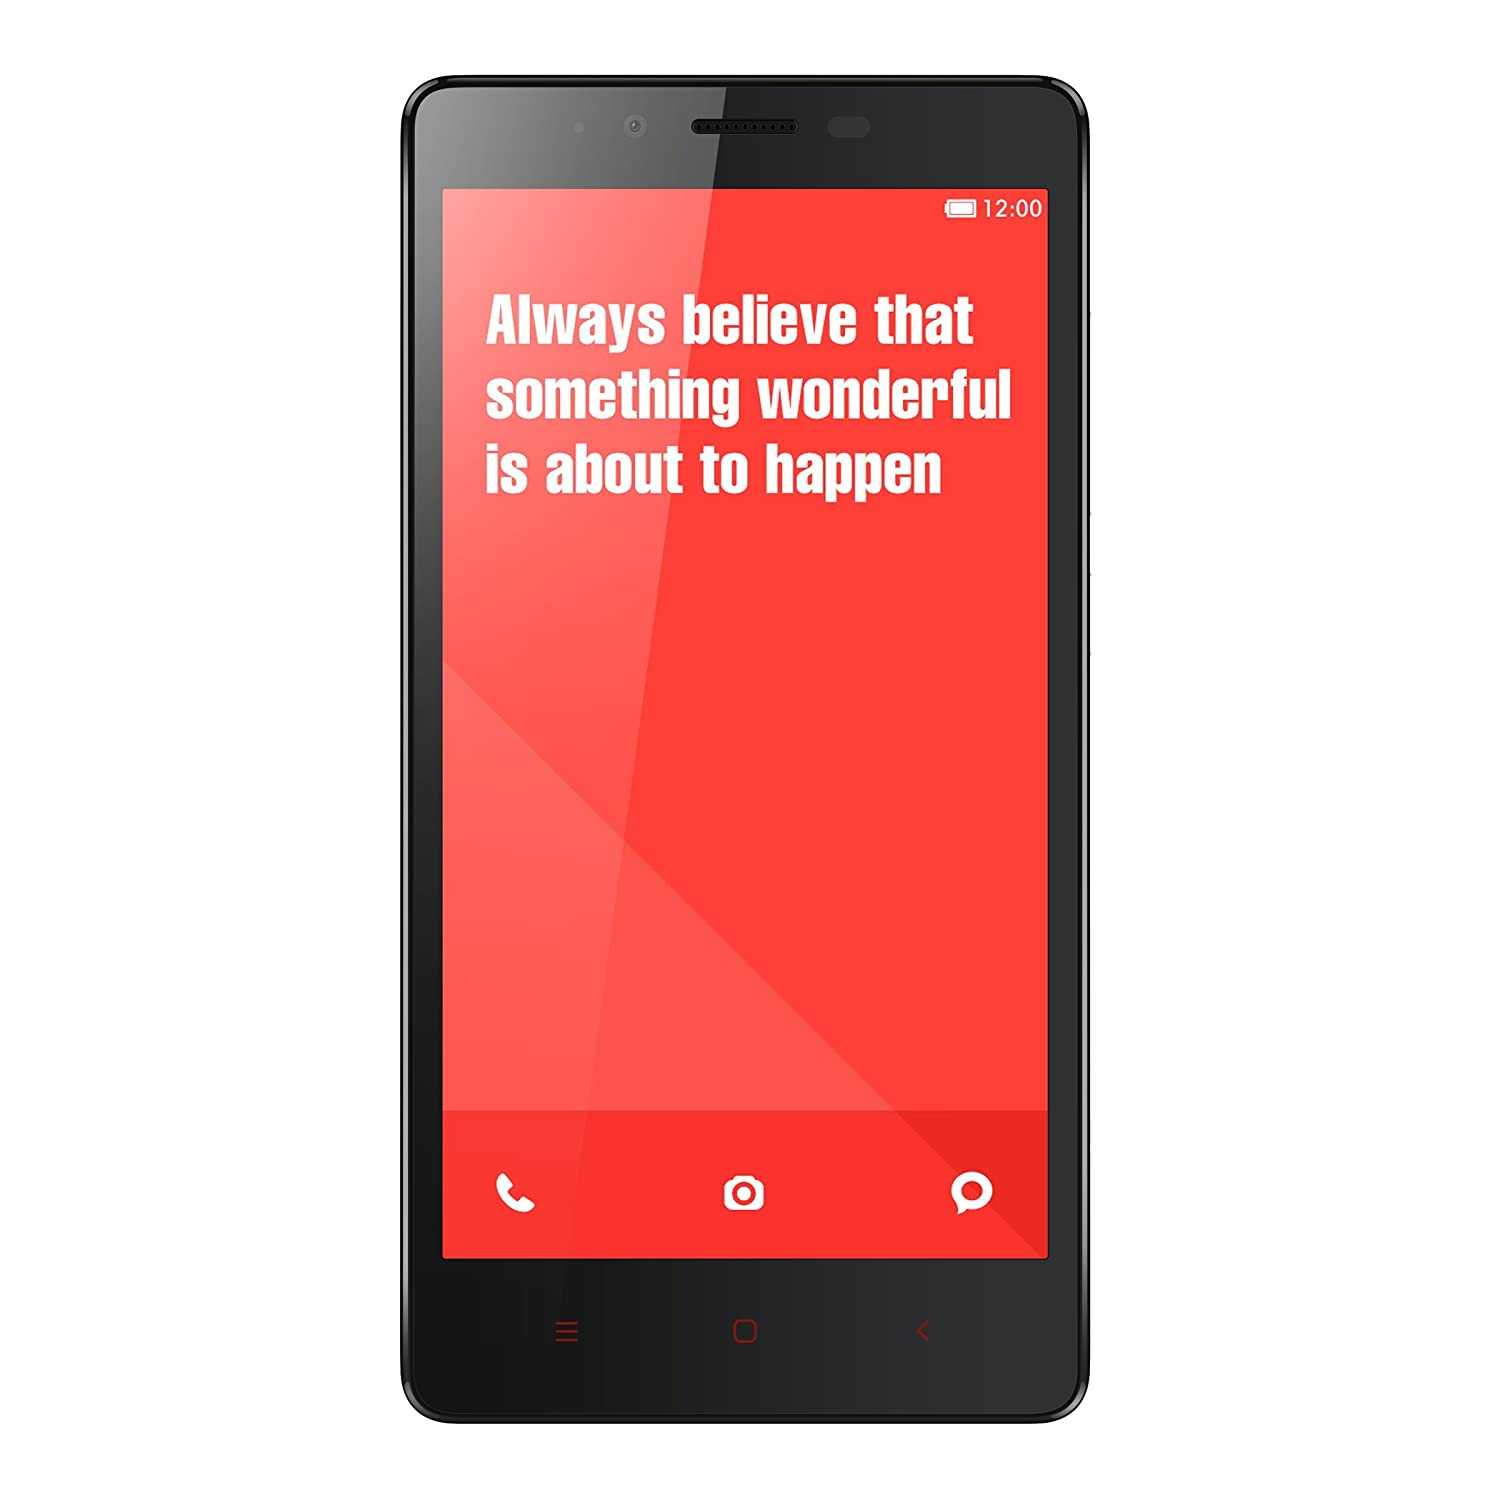 Xiaomi Redmi Note 4g White 8gb Price Buy 4a Ram2 32gb Online At Best In India